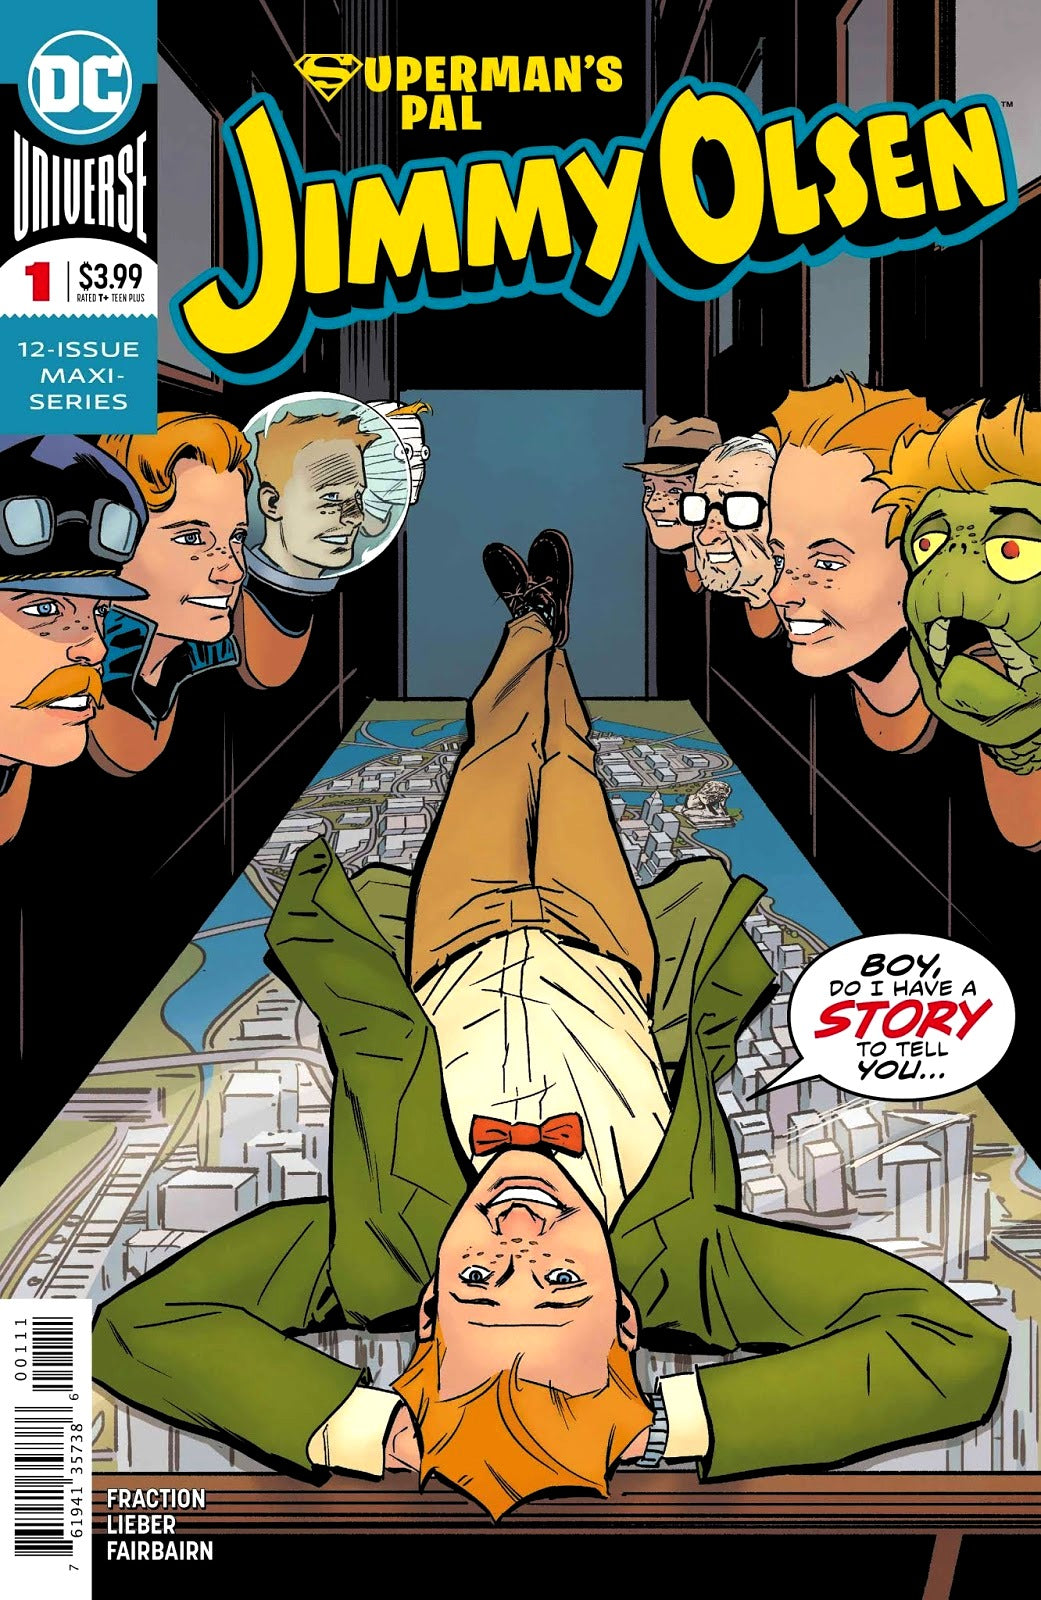 Superman's Pal Jimmy Olsen (2019) #1 (of 12)